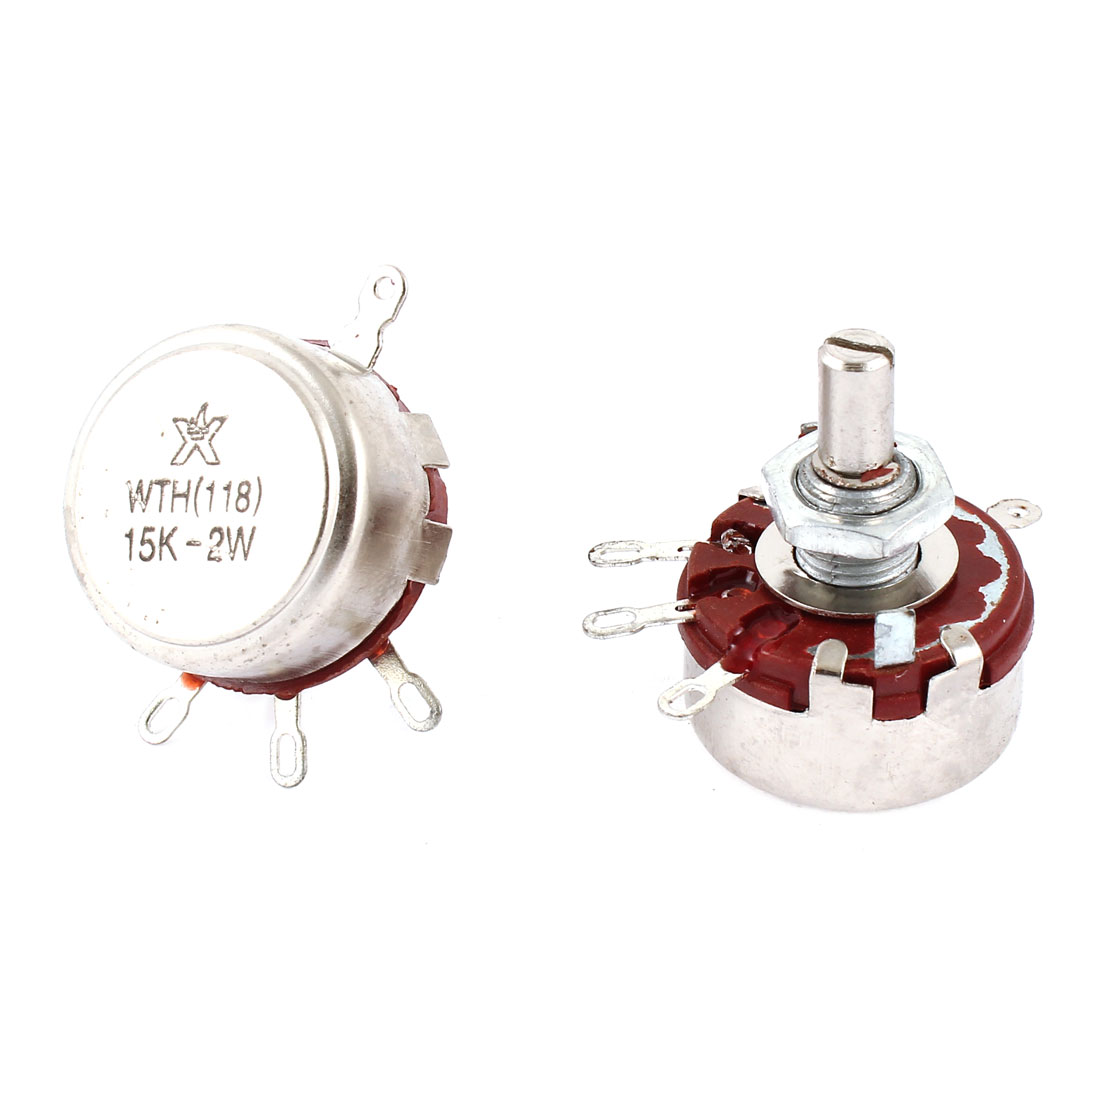 2 Pcs Single Turn Rotary Taper Carbon Potentiometer 2W 15K Ohm WTH118